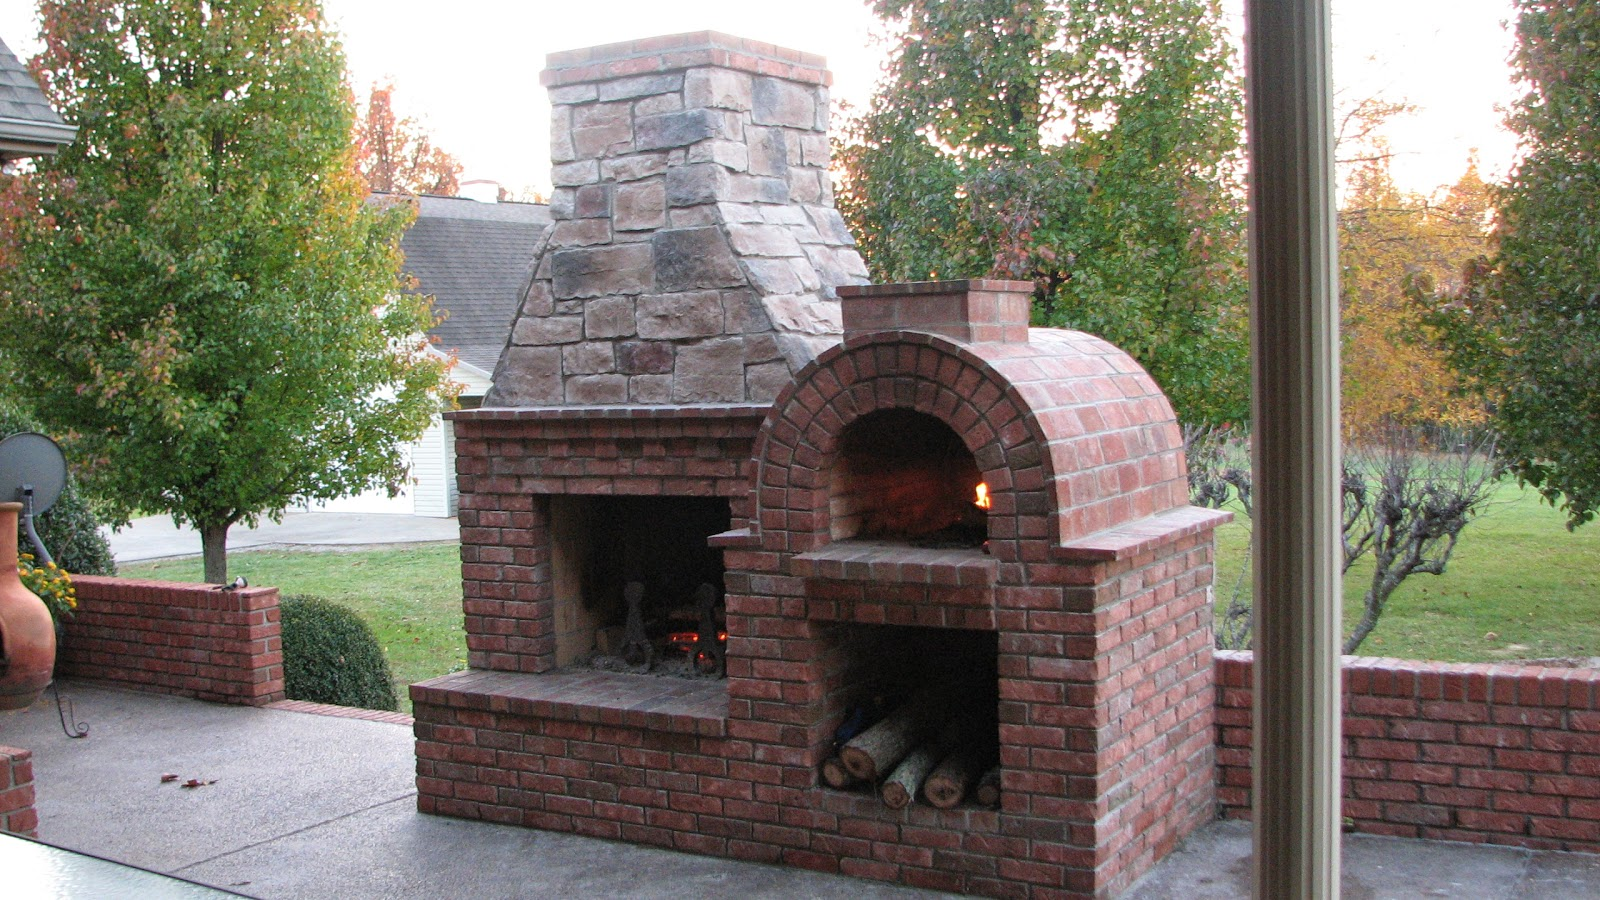 Riley Wood Fired Brick Pizza Oven And Fireplace Combo From A DIY Riley Wood  Fired Brick  Outdoor Fireplace And Pizza Oven